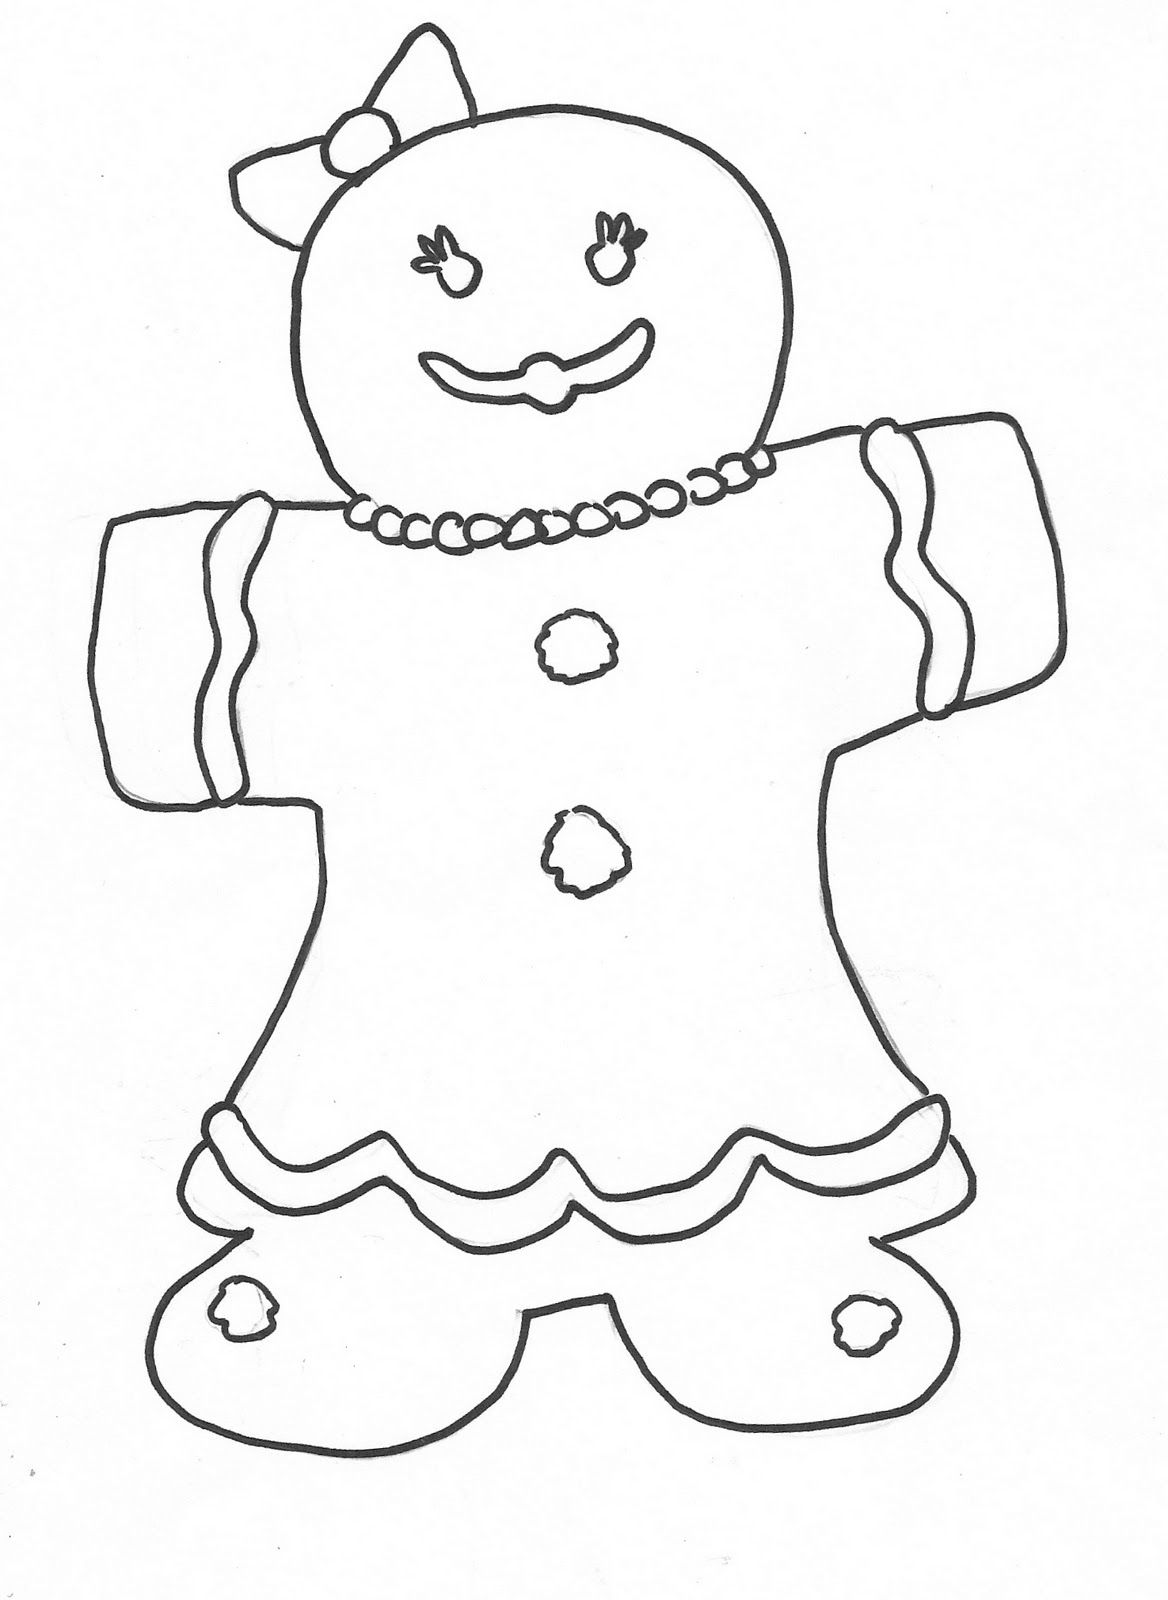 gingerbread coloring pages breathtaking gingerbread house coloring page pdf gingerbread pages coloring